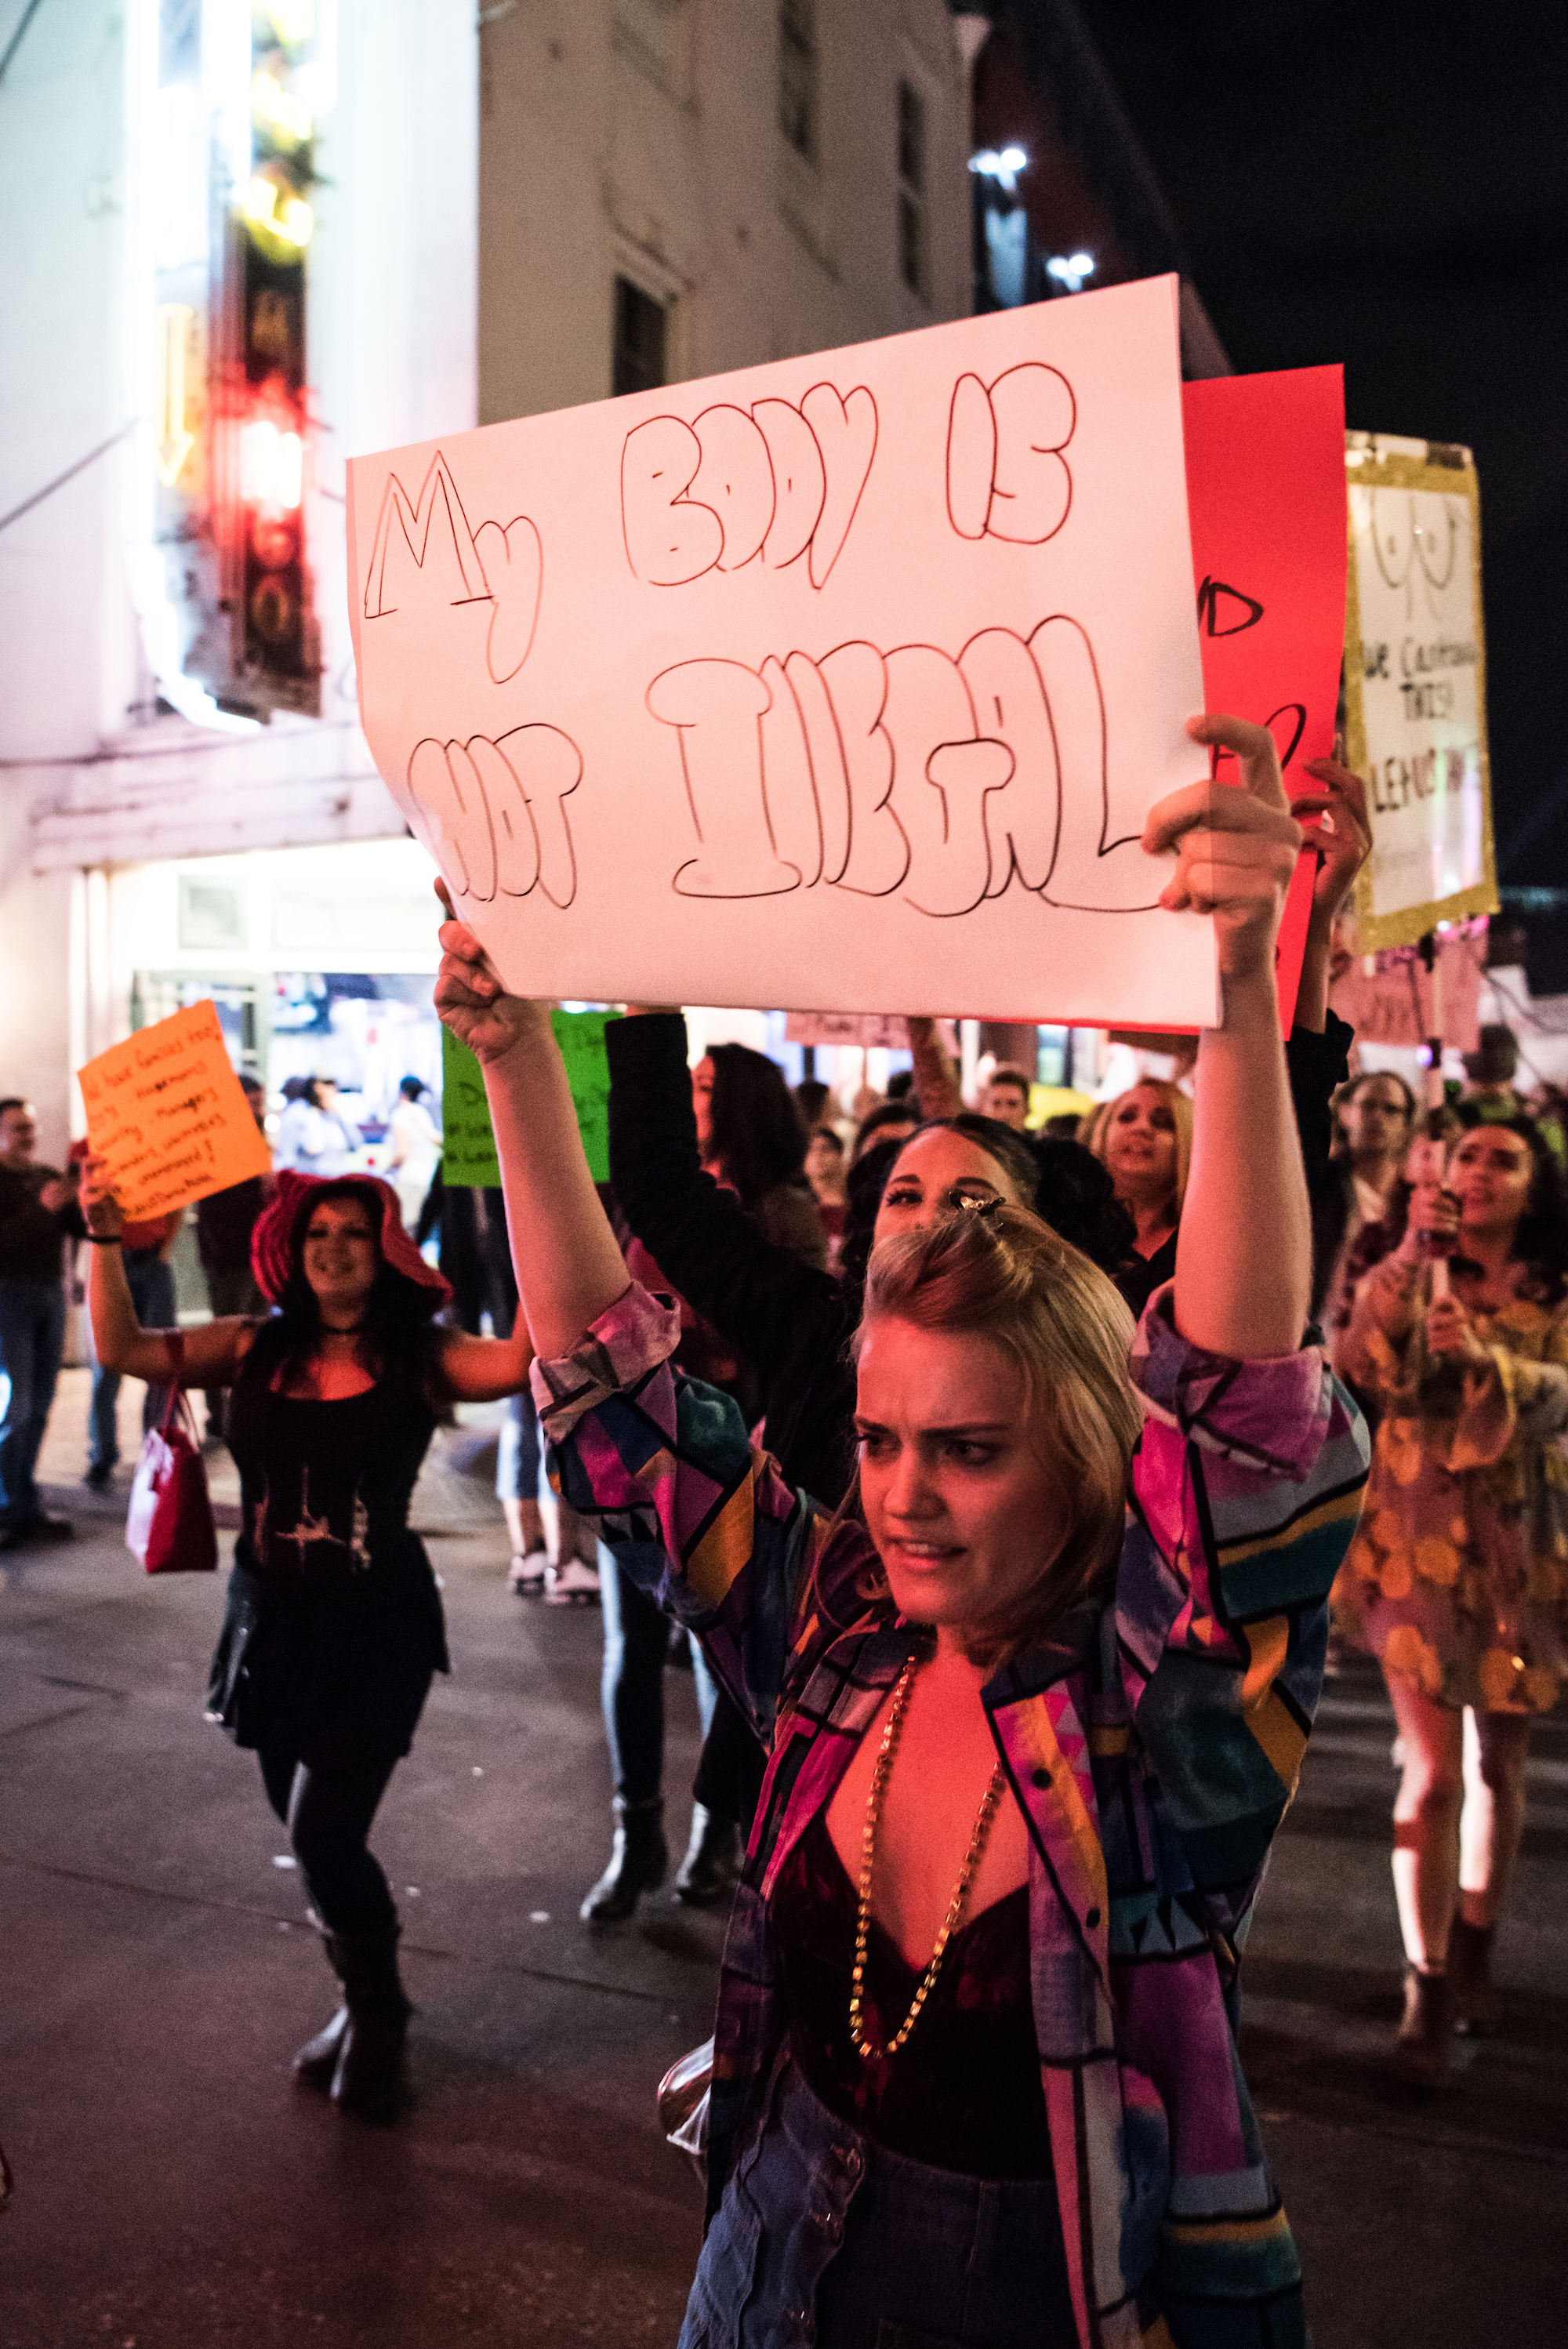 New orleans transsexual strip clubs